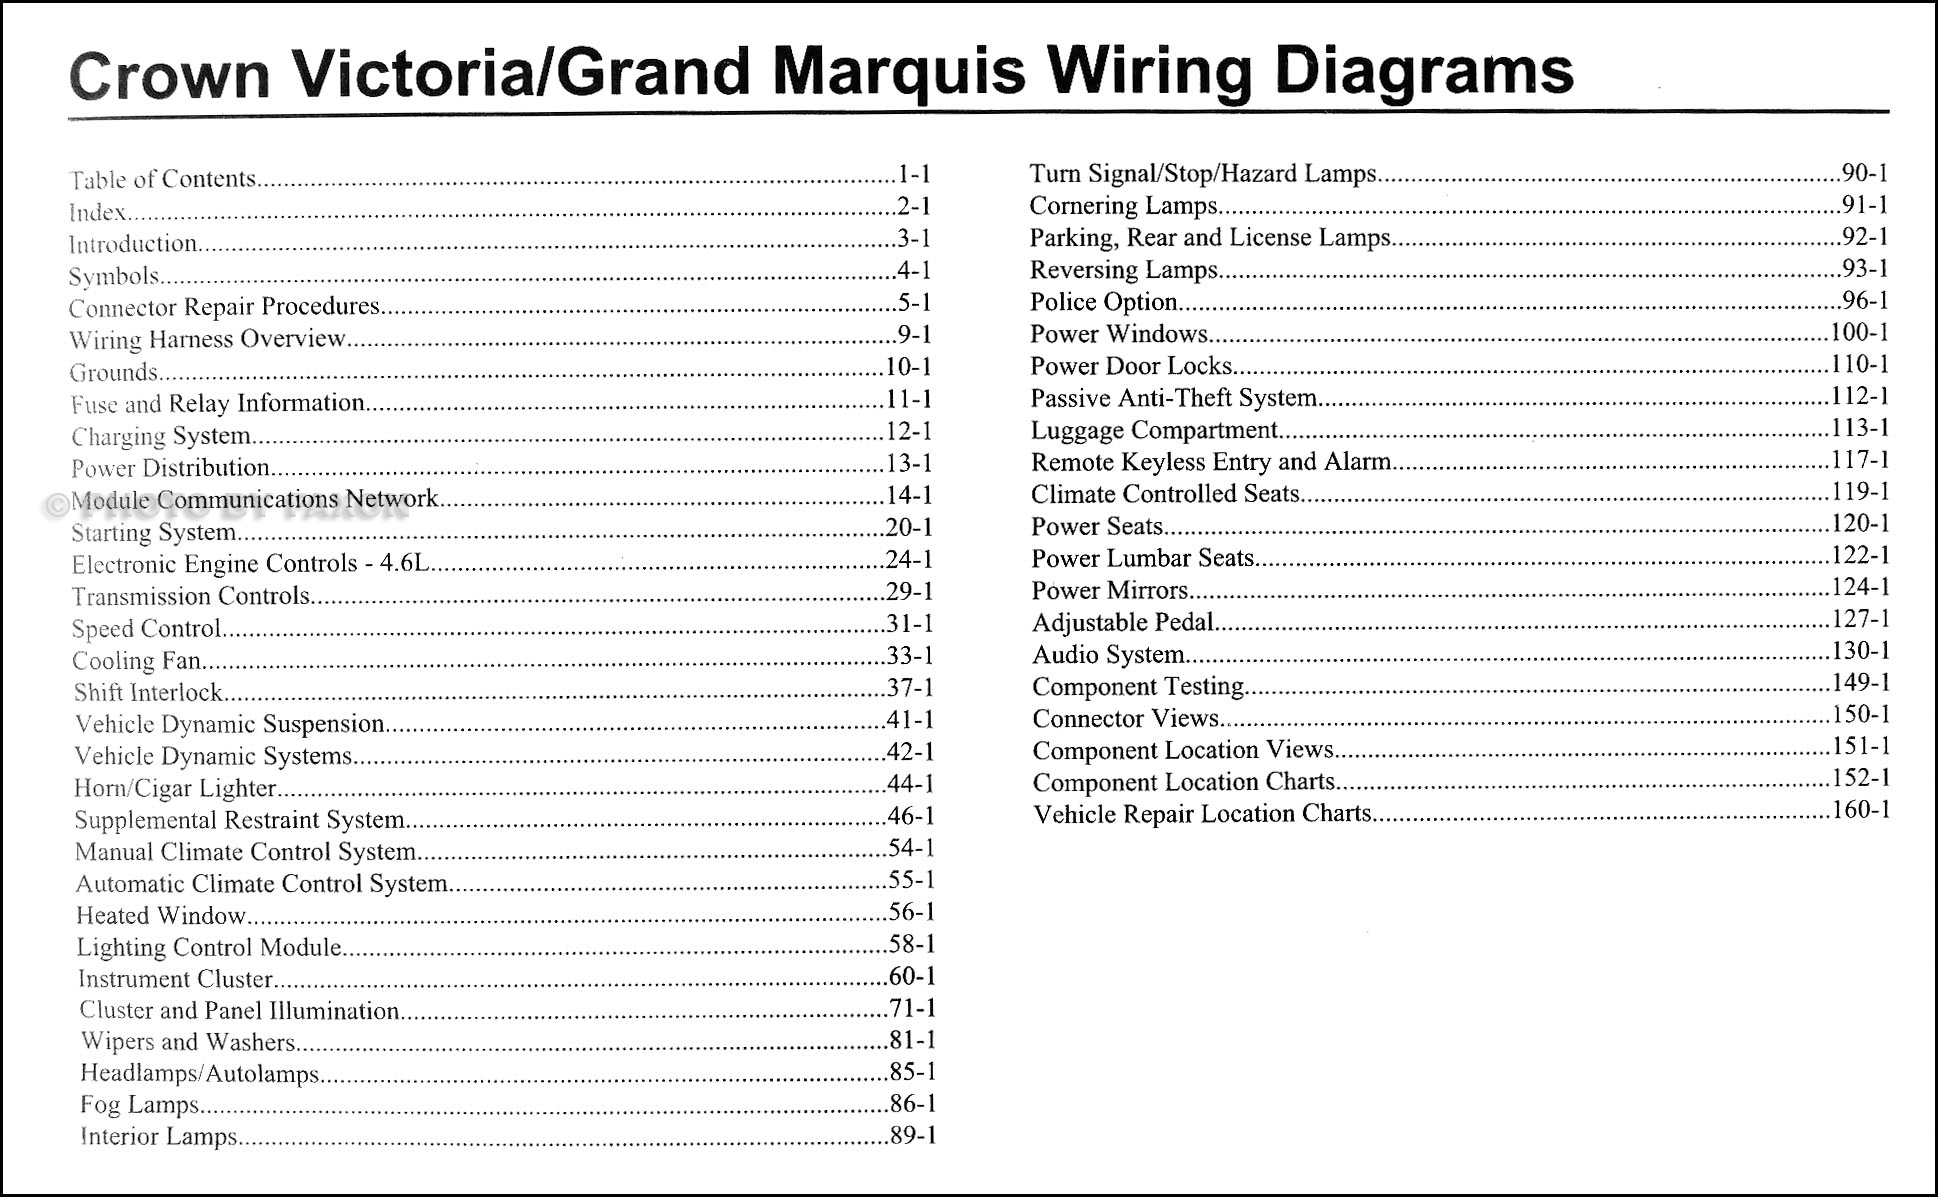 2009FordCrownVictoriaOWD TOC color codes for radio wiring** body and interior crownvic 30 Amp RV Wiring Diagram at alyssarenee.co